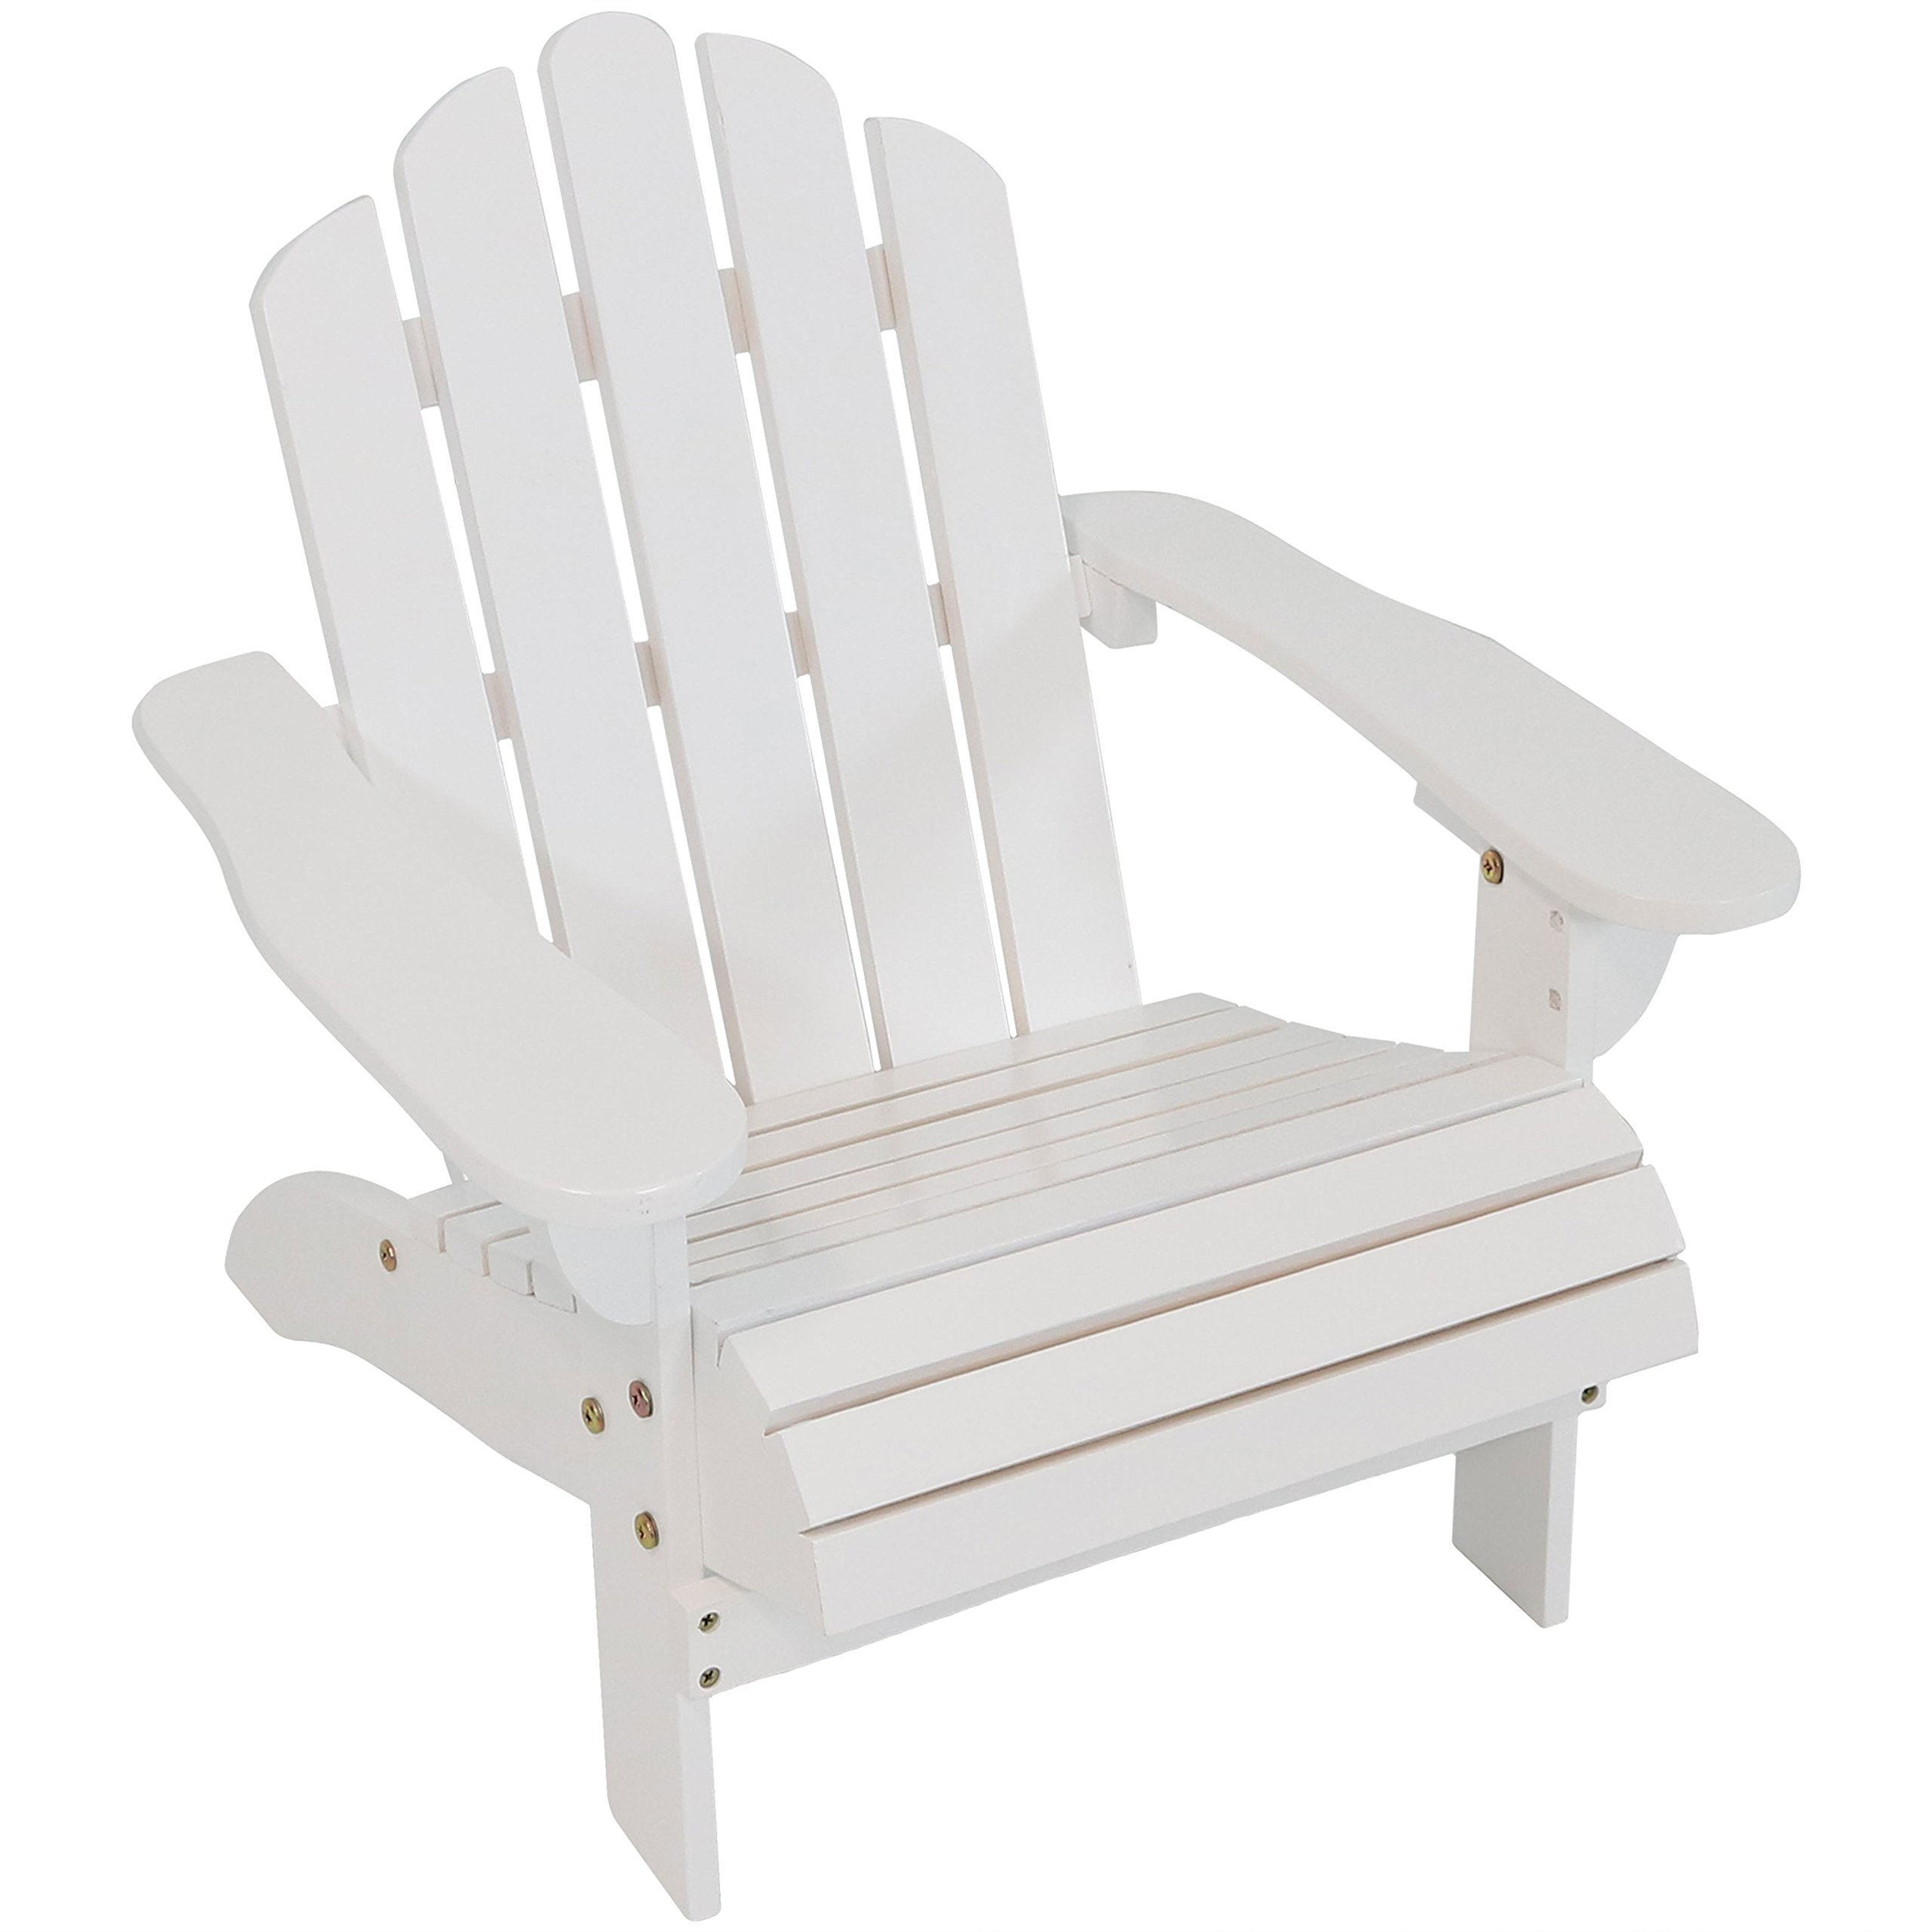 Sunnydaze Toddler Classic Wooden Adirondack Chair with Non-Toxic Paint Finish, Fits Most Children Under 3 Feet Tall, White